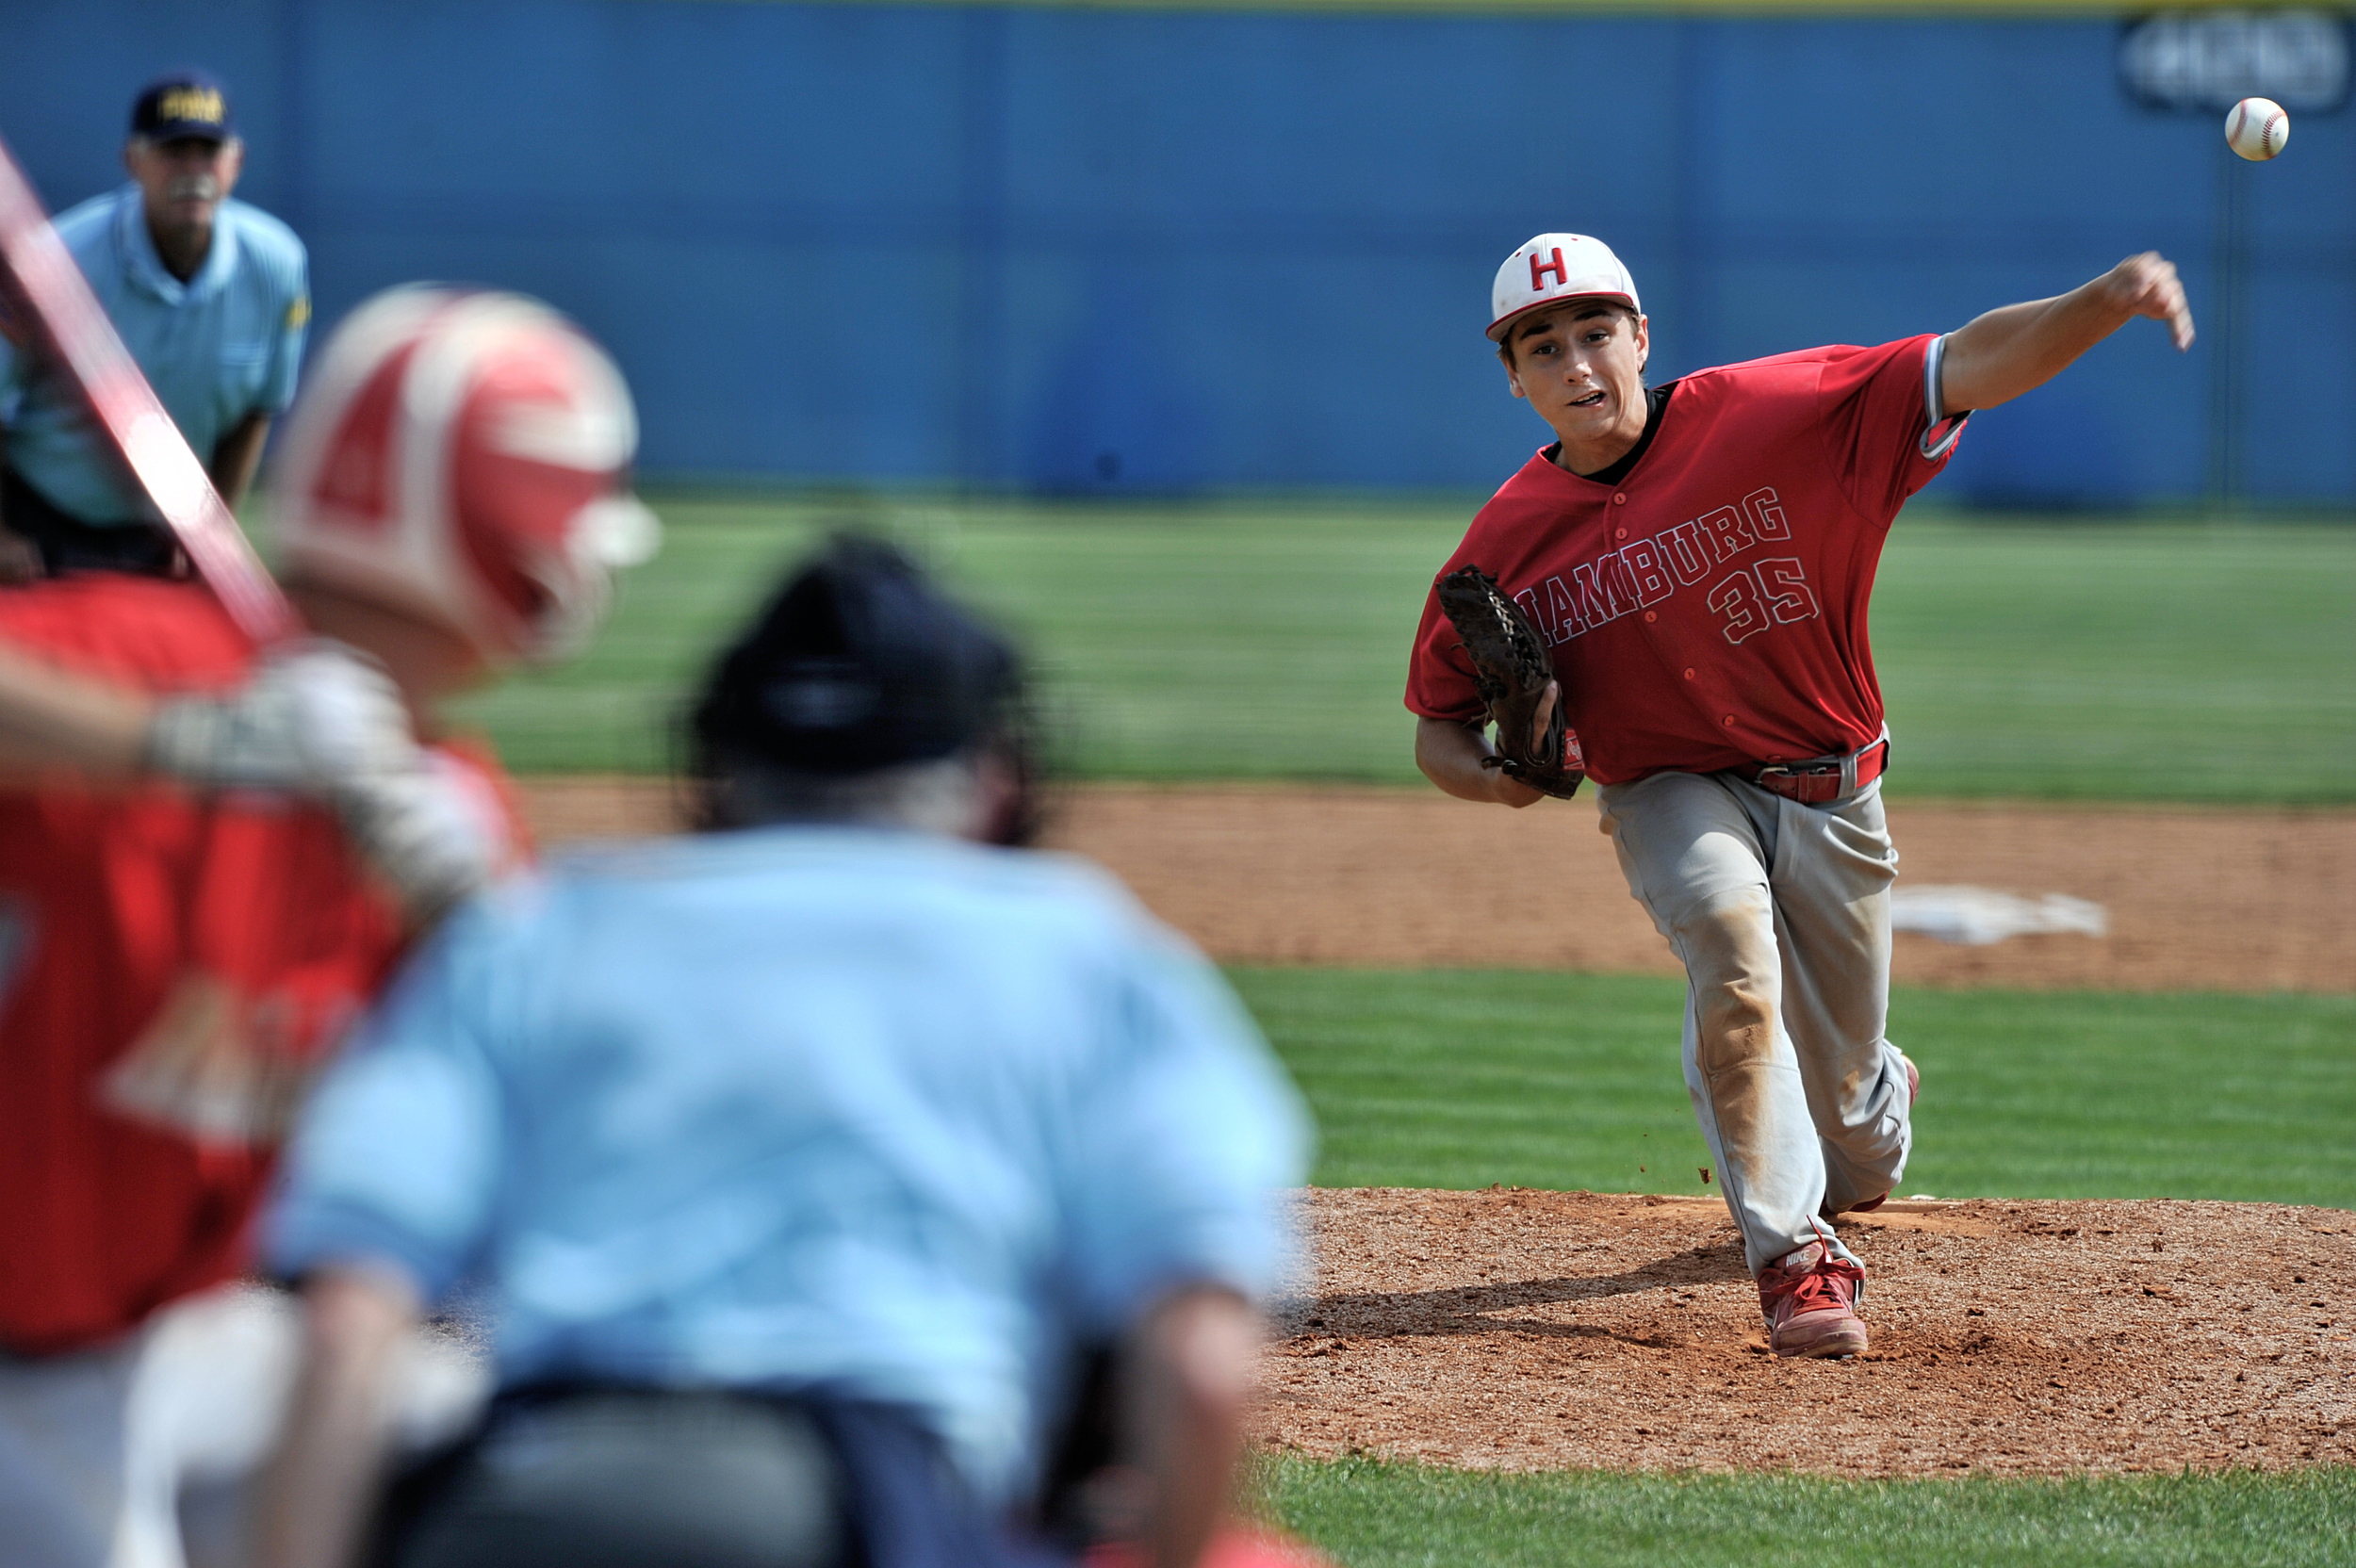 Hamburg's Janson Youndt pitches at the game against Bellefonte in the PIAA playoffs in Chambersburg, PA, on June 13, 2016. (Sarah Stier: Reading Eagle)